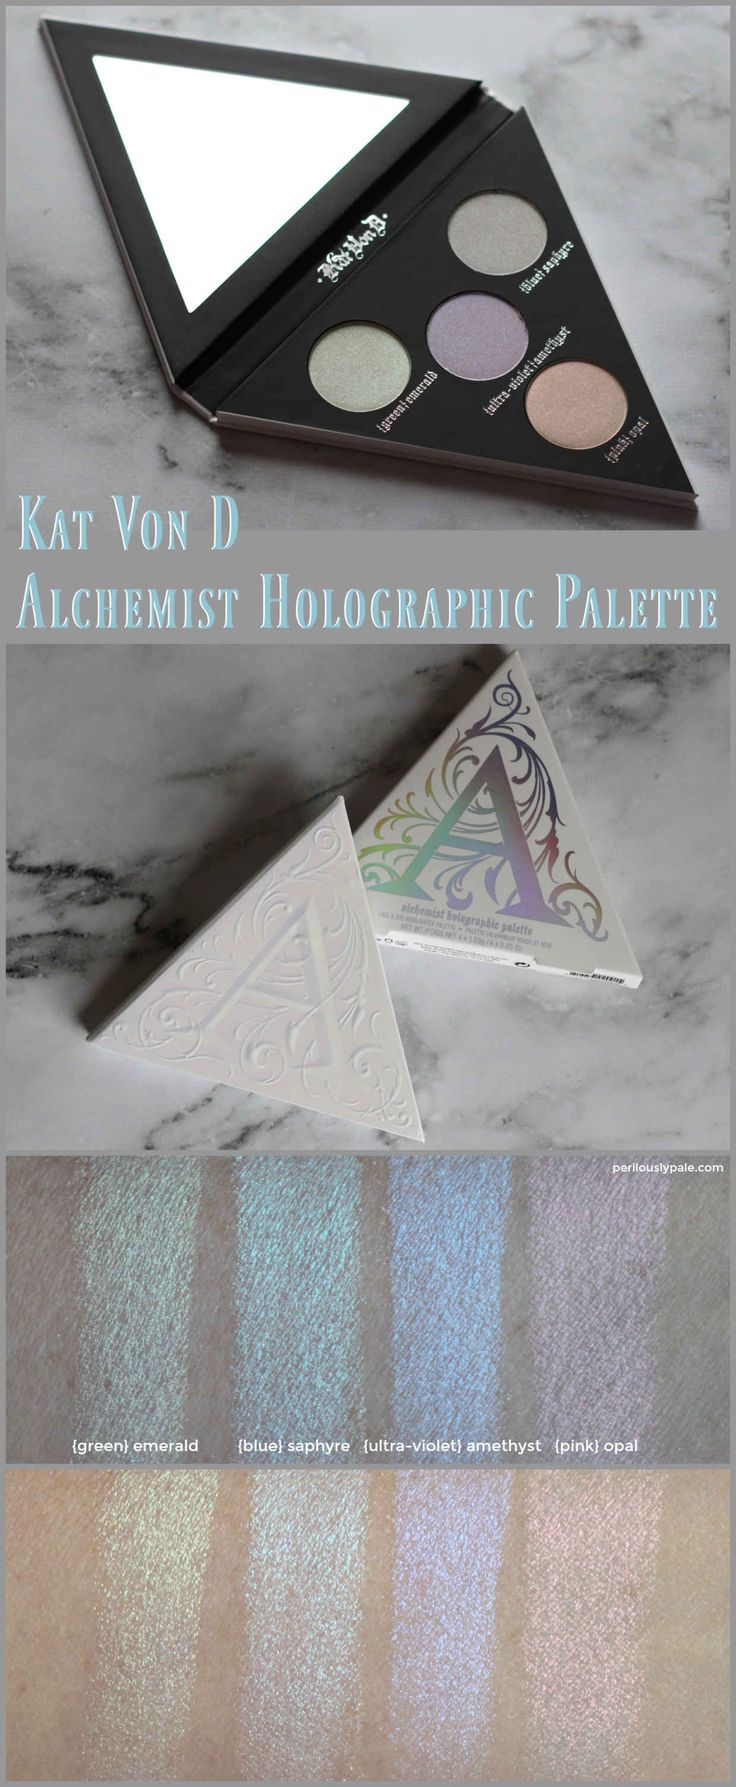 Kat Von D Alchemist Holographic Palette Review & Swatches